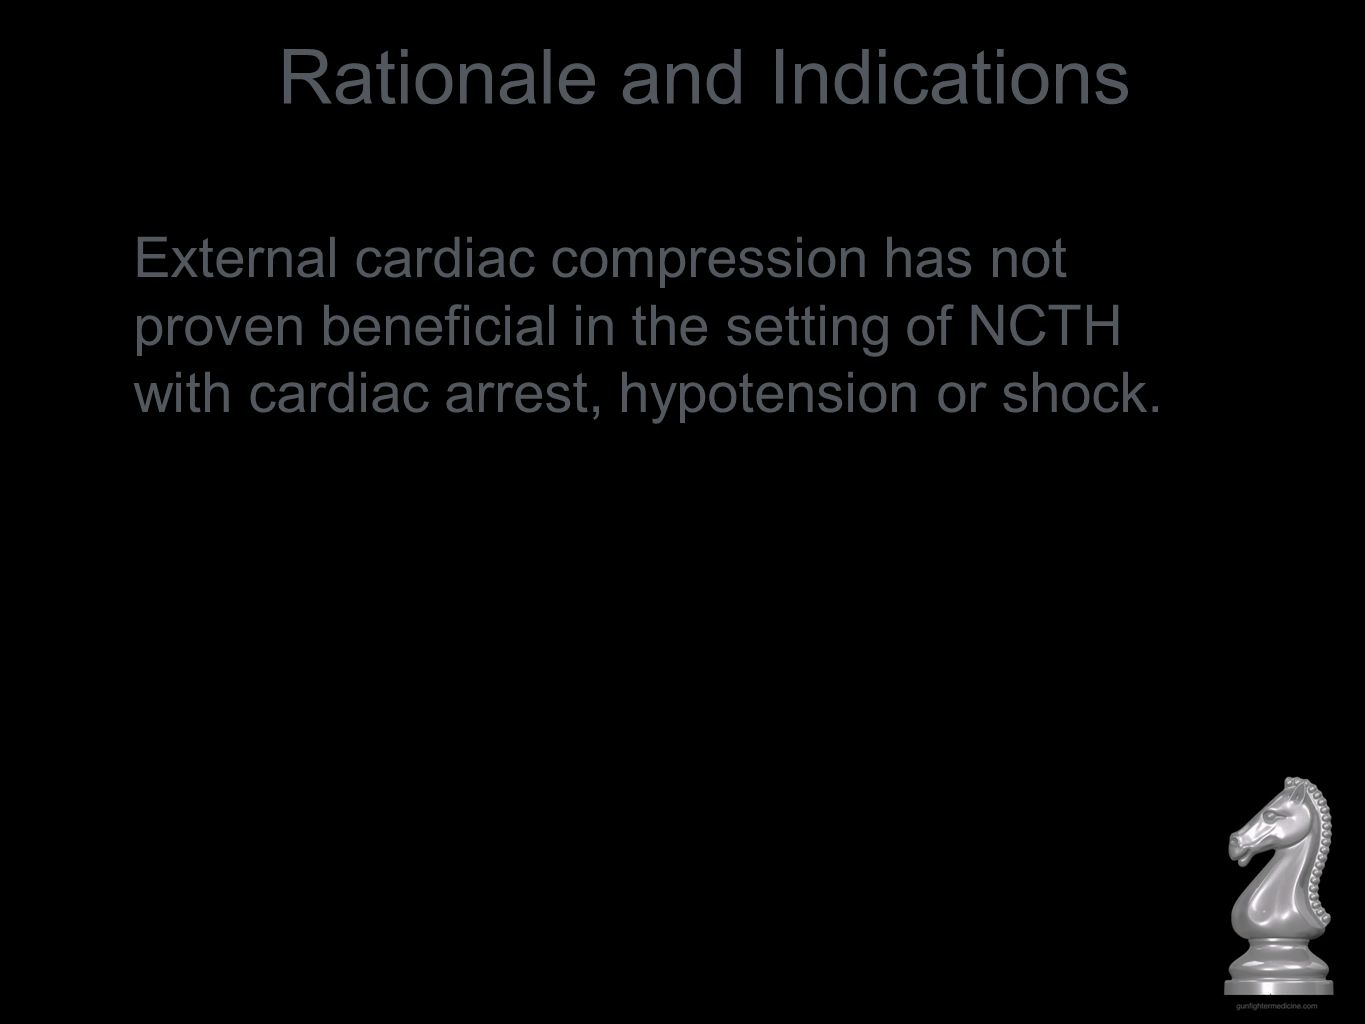 Resuscitative aortic occlusion (RAO) for NCTH: mitigates hemorrhage increases afterload increases central aortic pressure buys time until surgical / IR hemostasis can be achieved Rationale and Indications